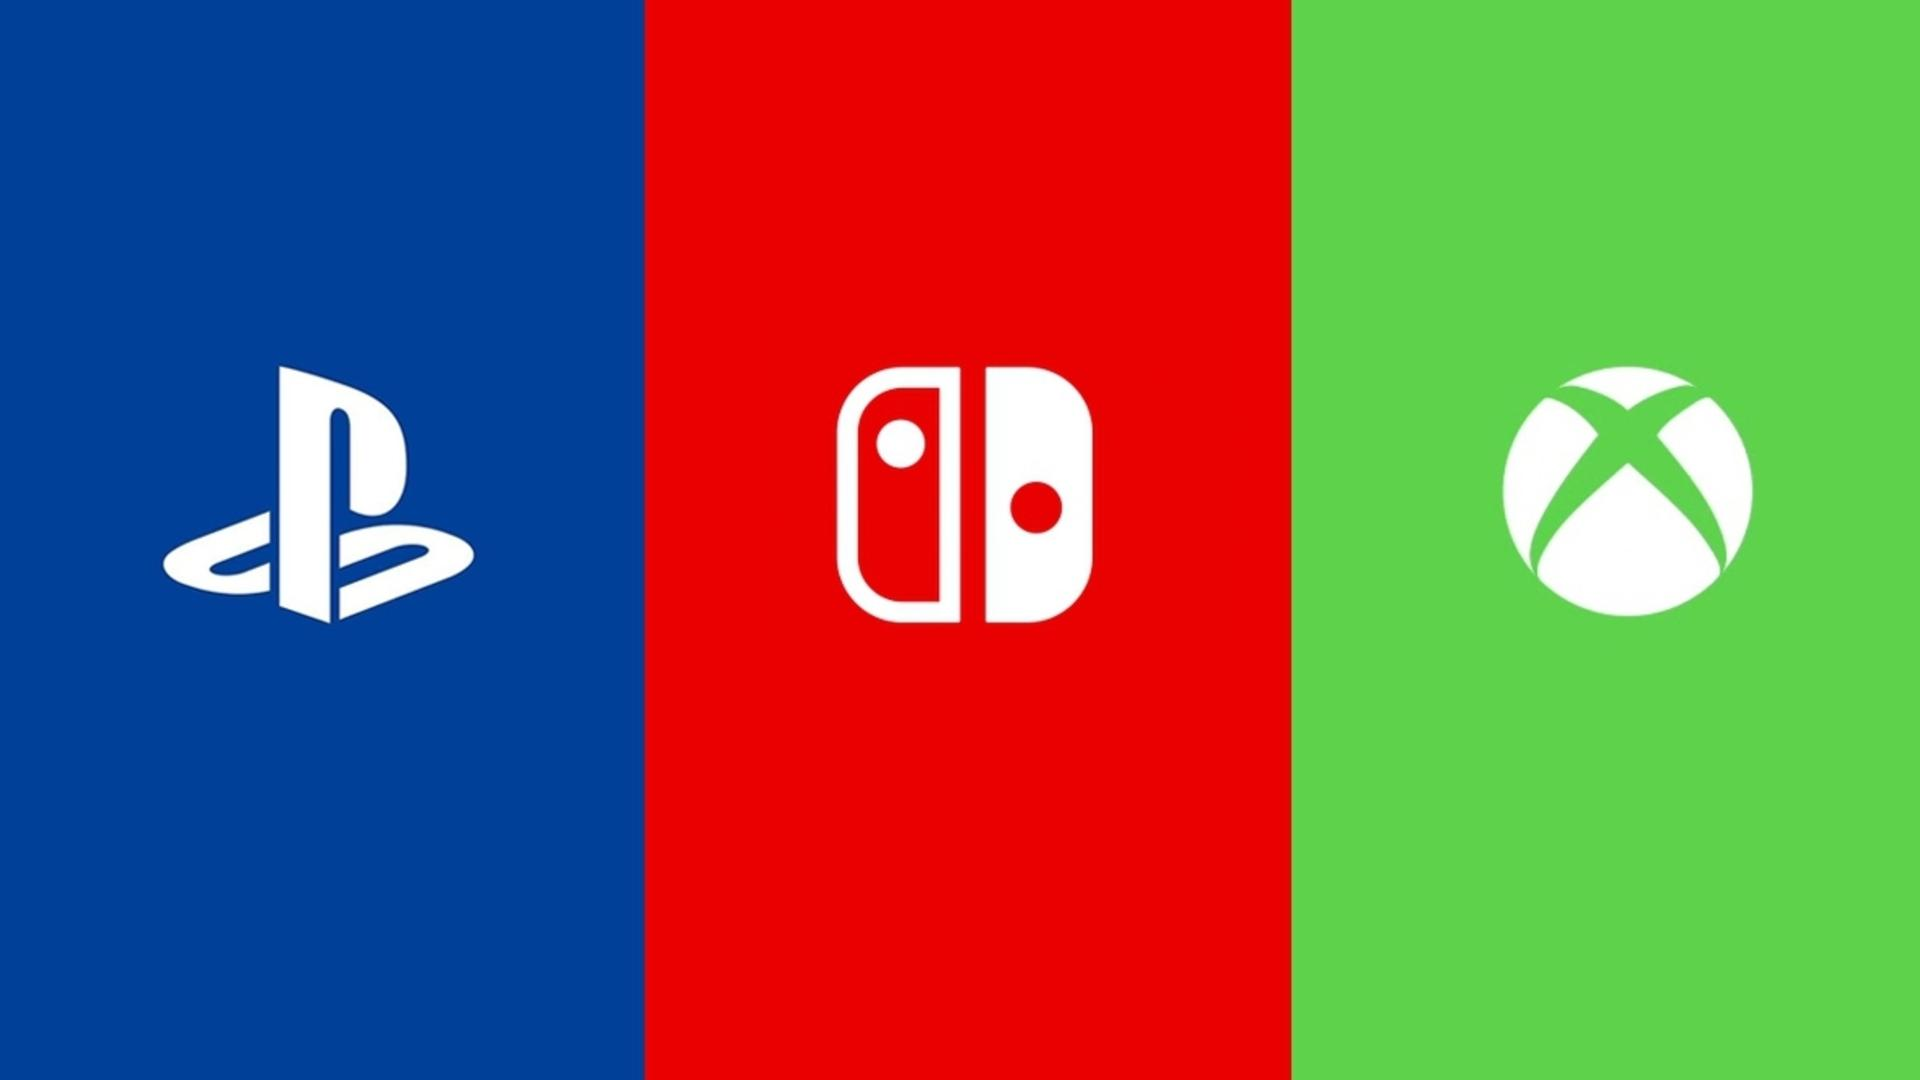 Nintendo Ps4 Xbox Wallpapers Wallpaper Cave